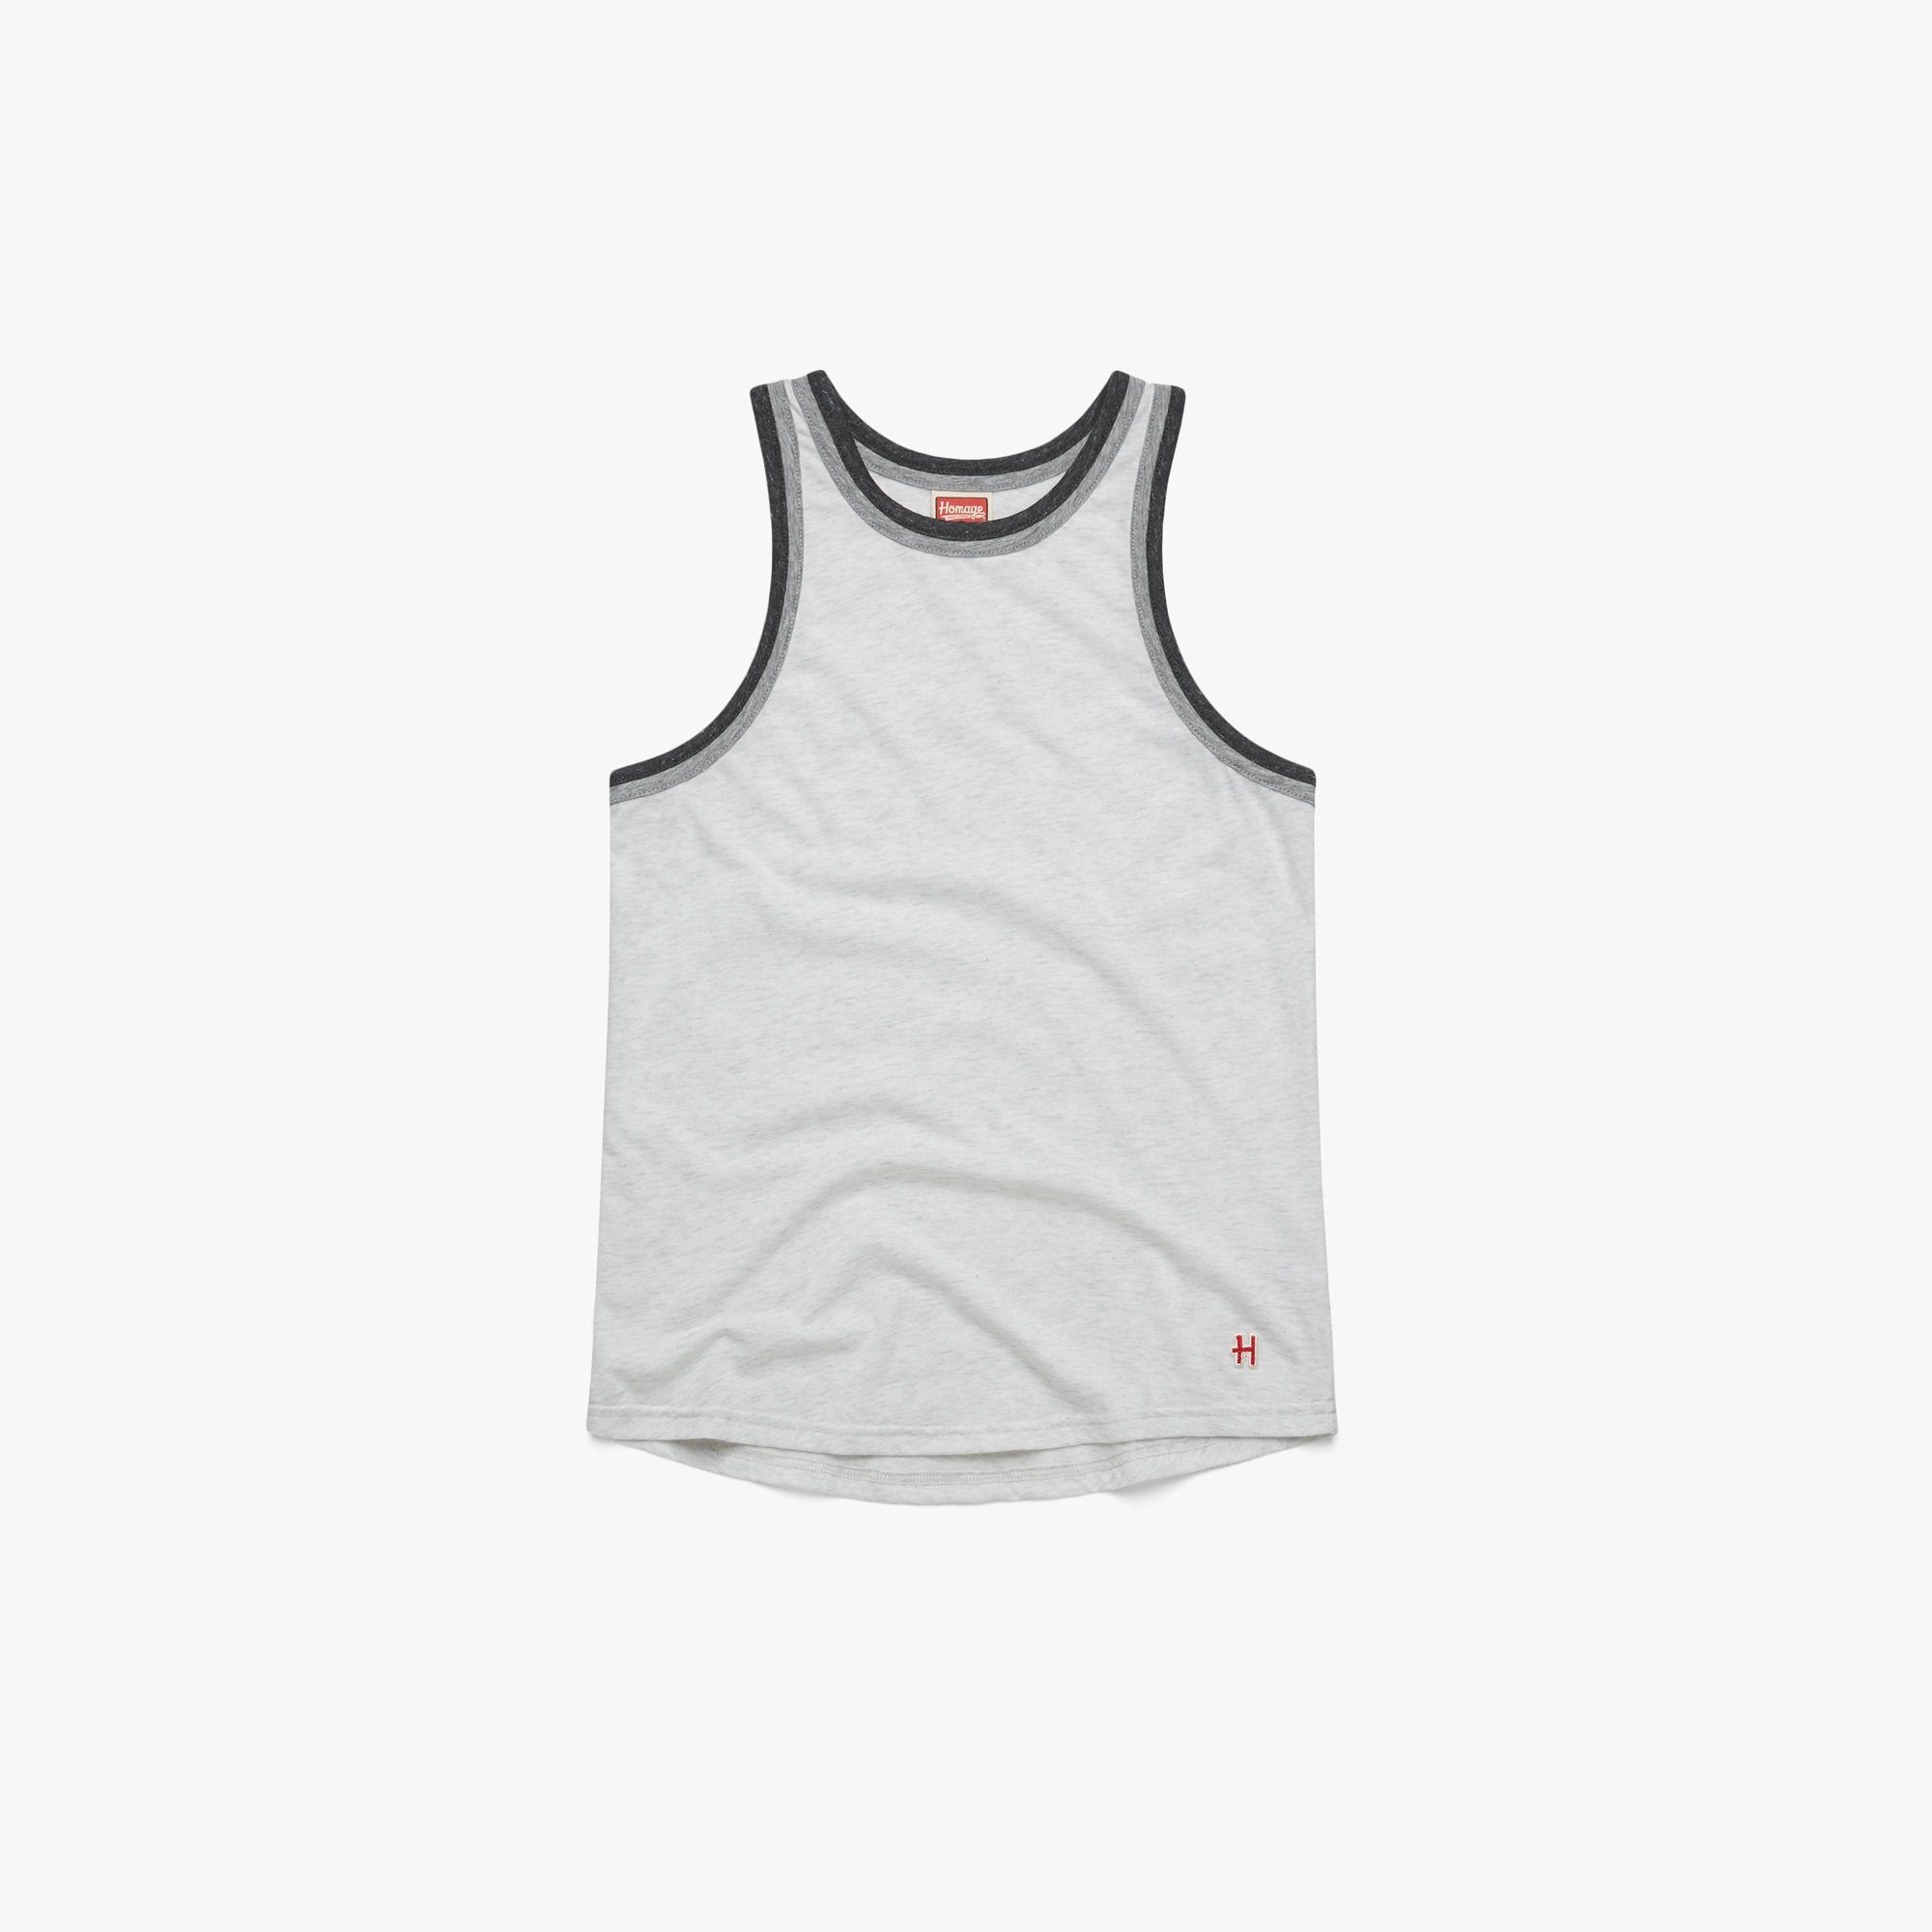 Women's Go-To Tank Top